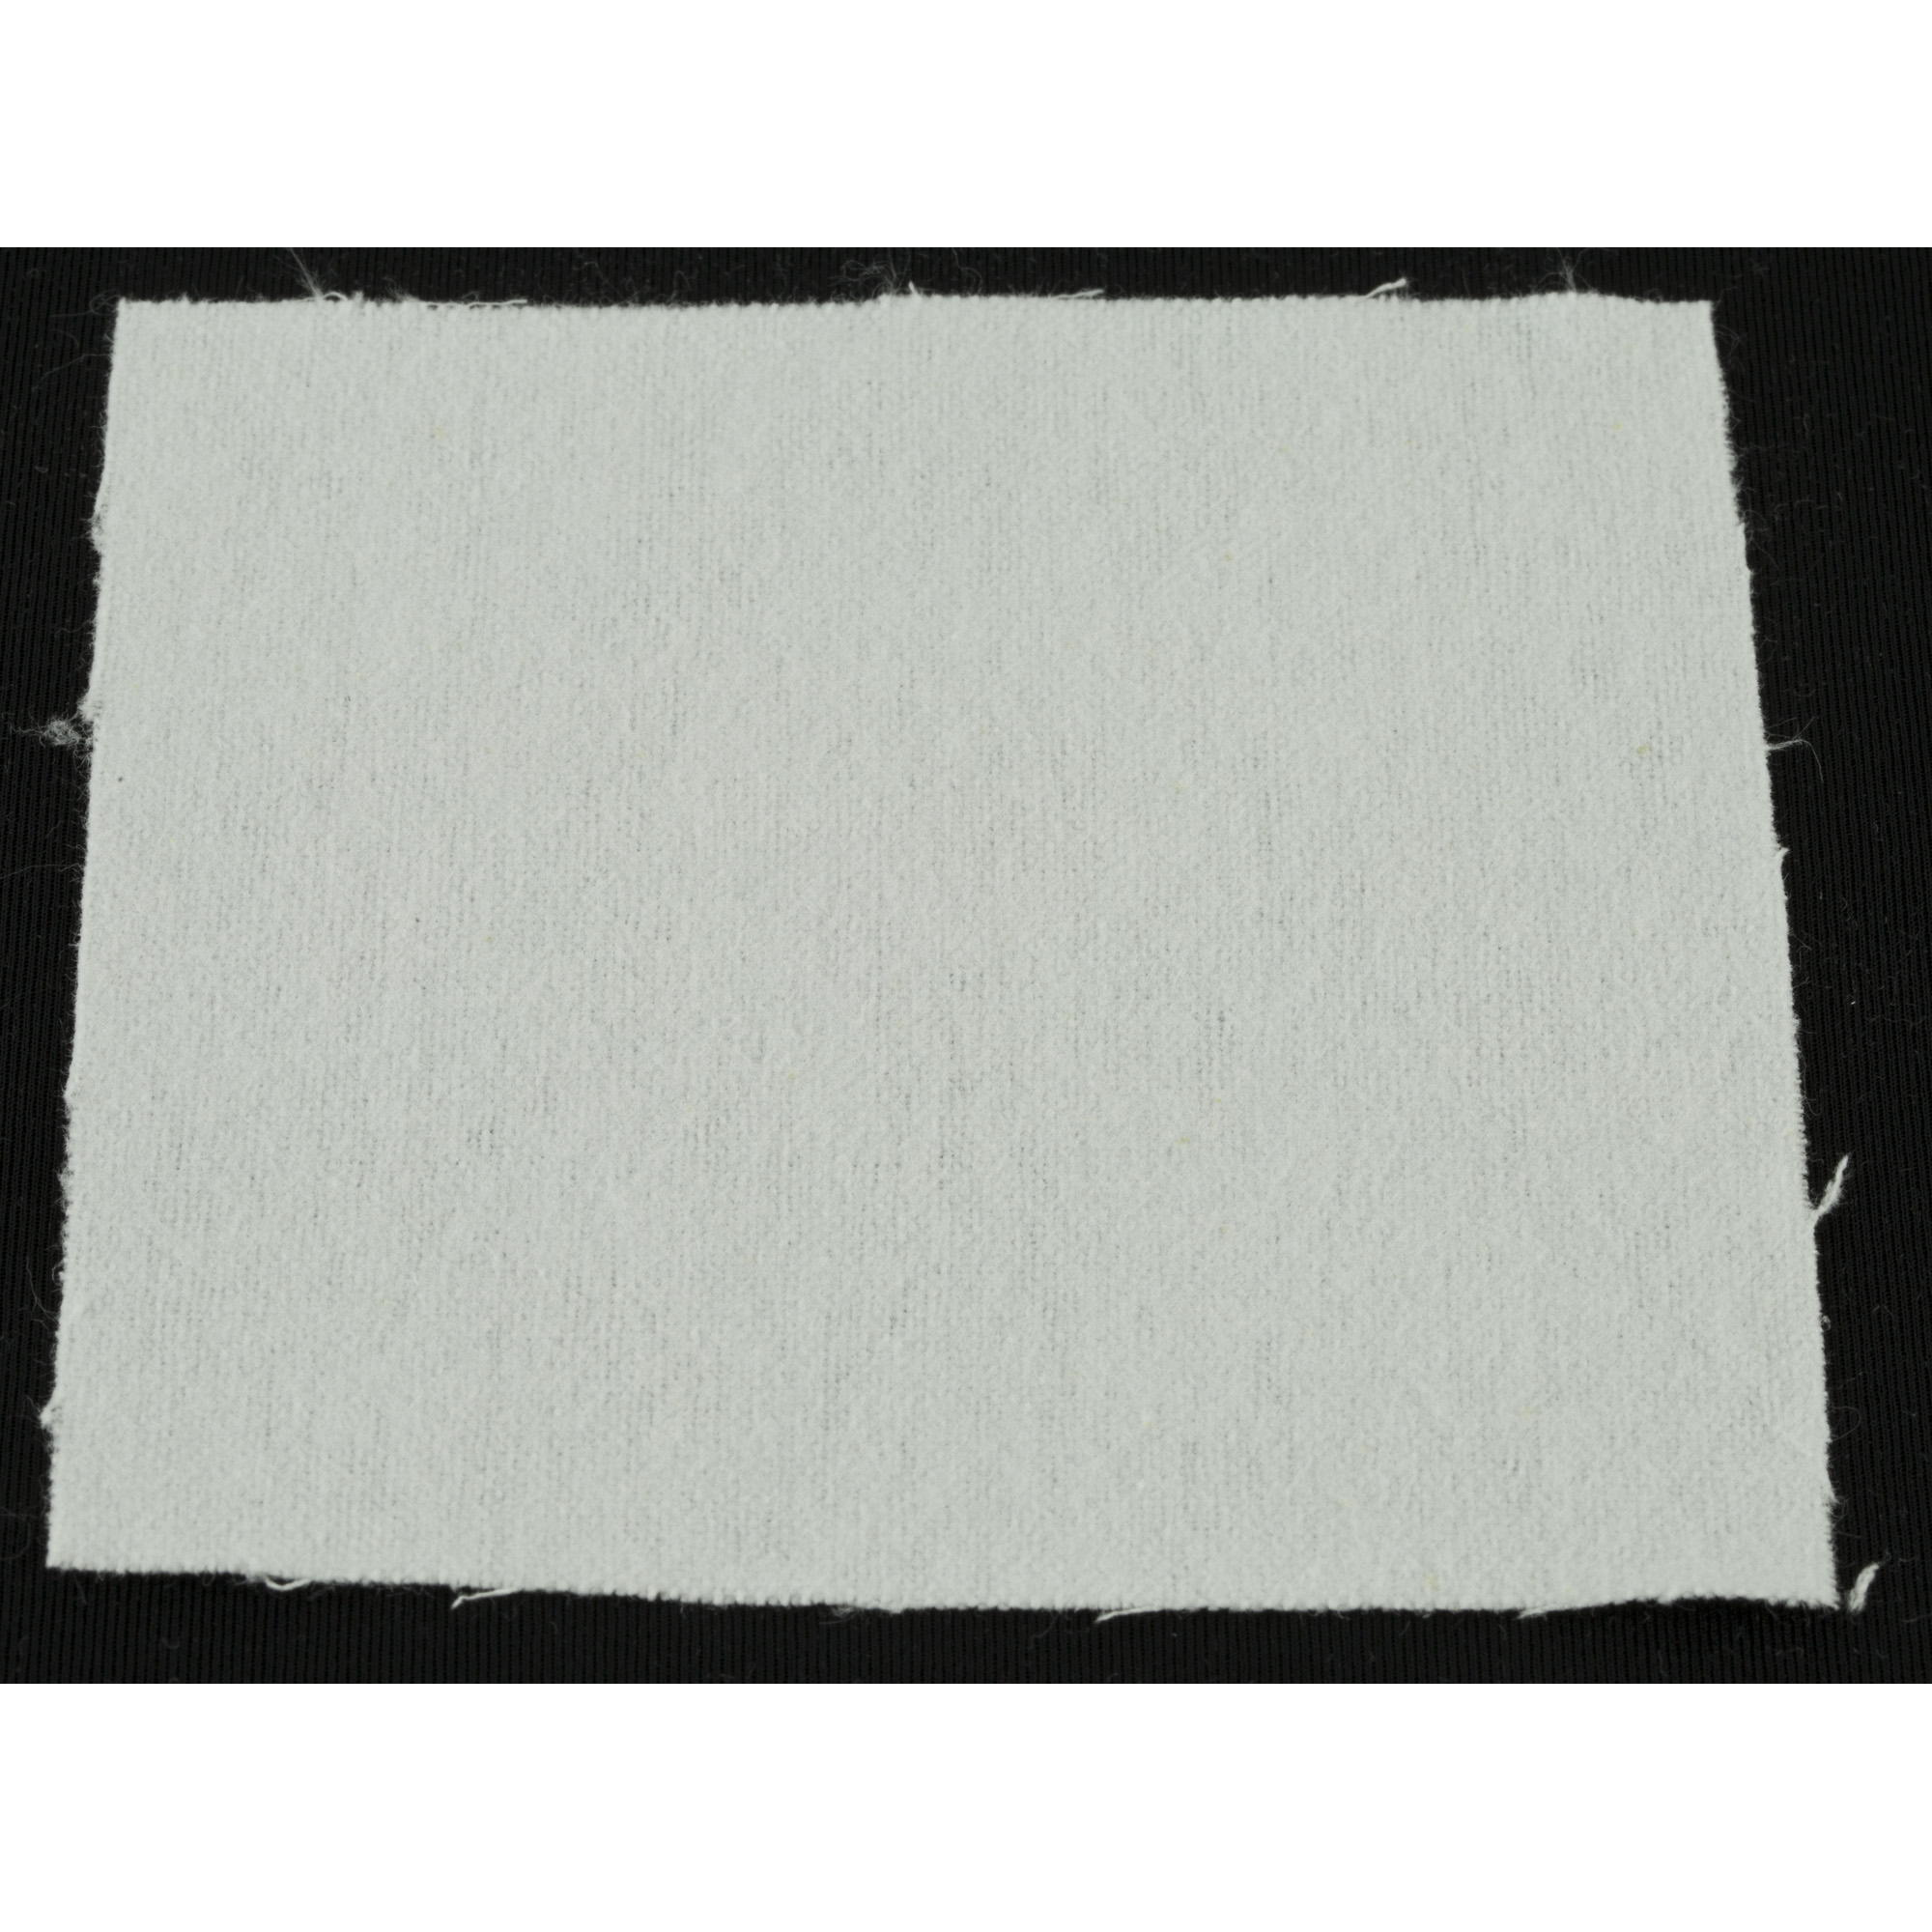 These Premium 100% cotton flannel patches provide maximum absorbency and bore protection.